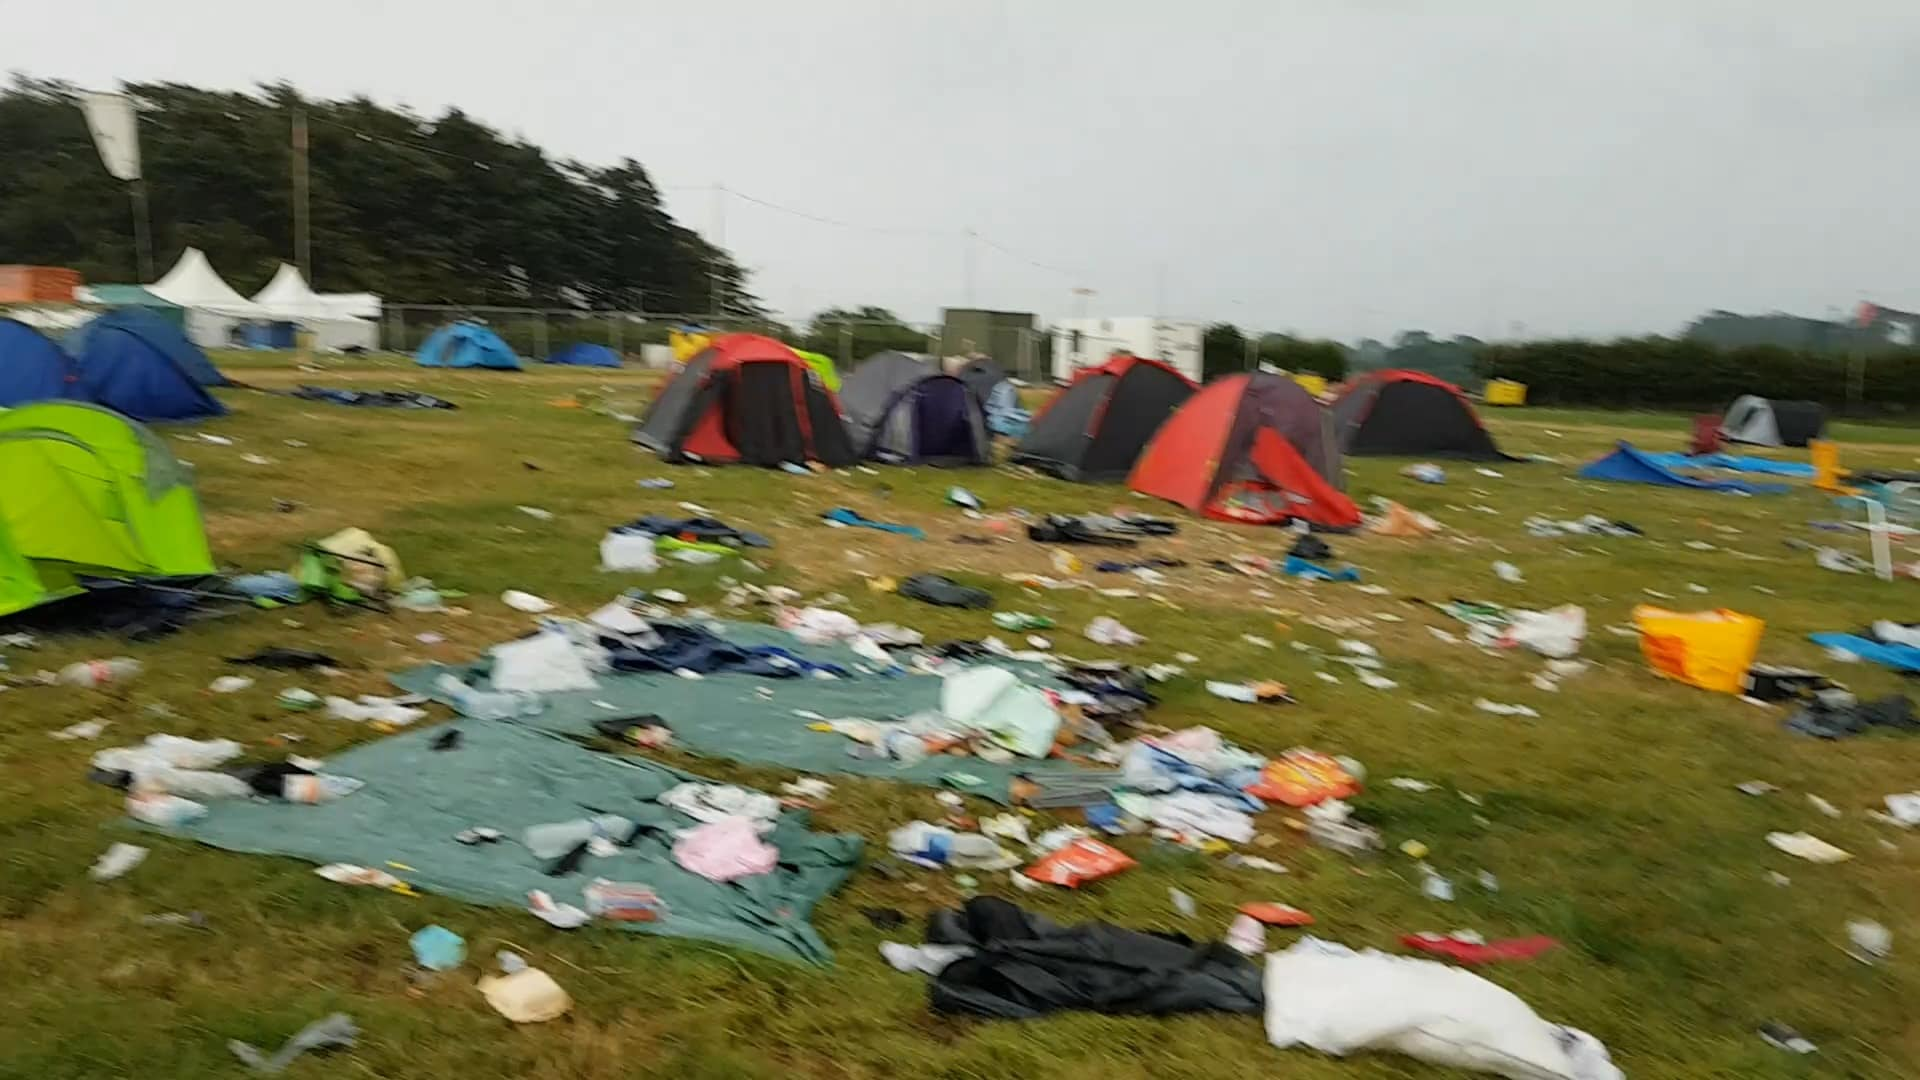 It would take six weeks for up to 300 festival staff to clean up the mess (Image: Kennedy News and Media)